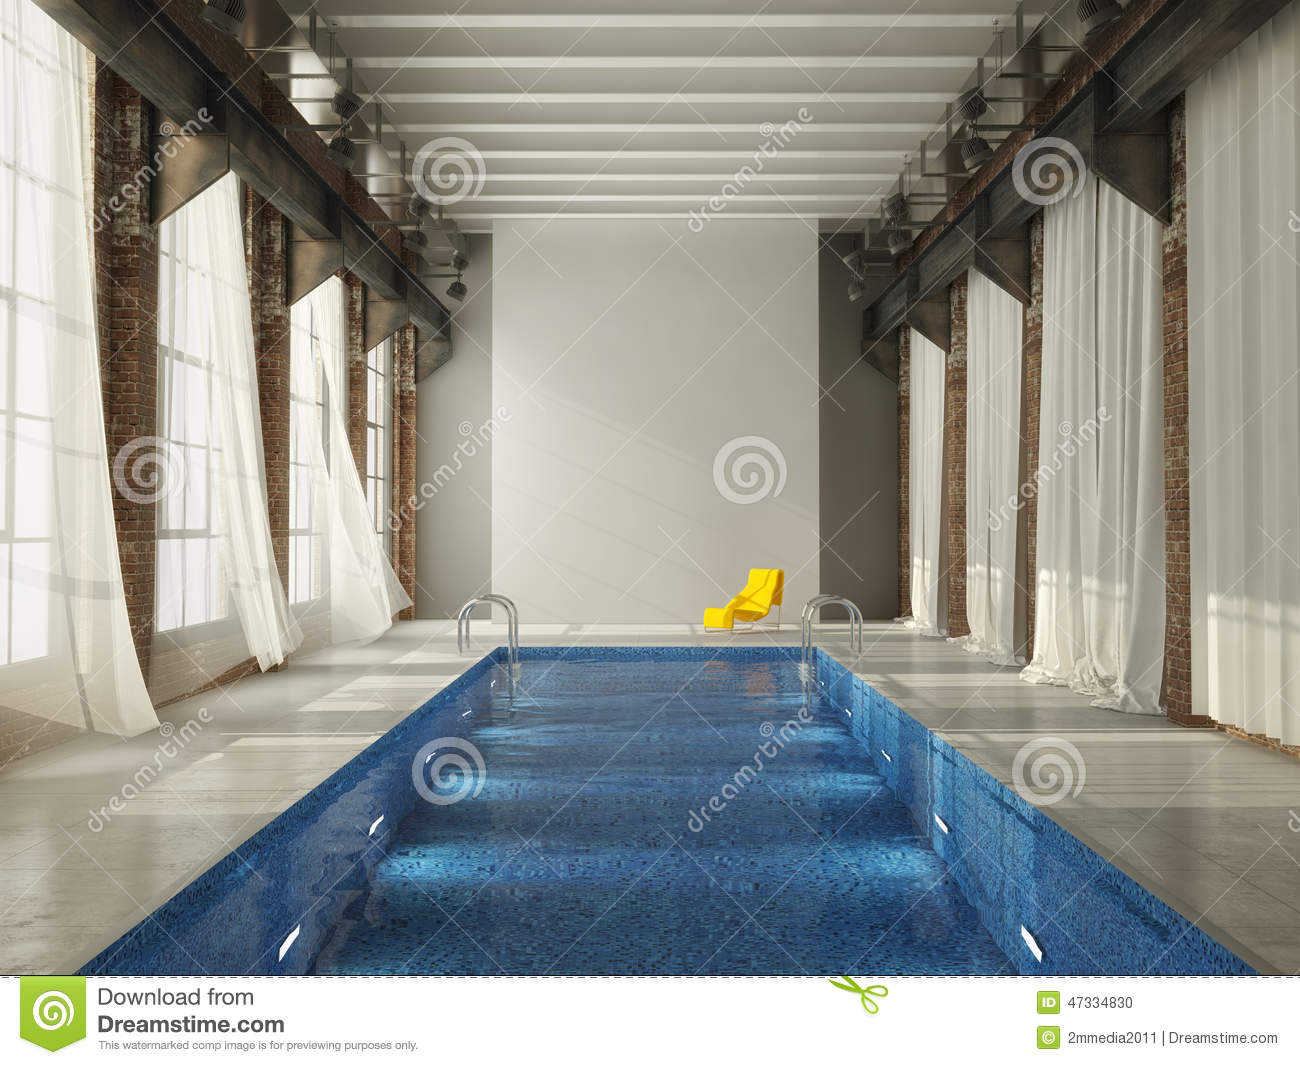 Piscine d 39 int rieur dans un grenier rendu 3d illustration stock image 47334830 for Piscine d interieur